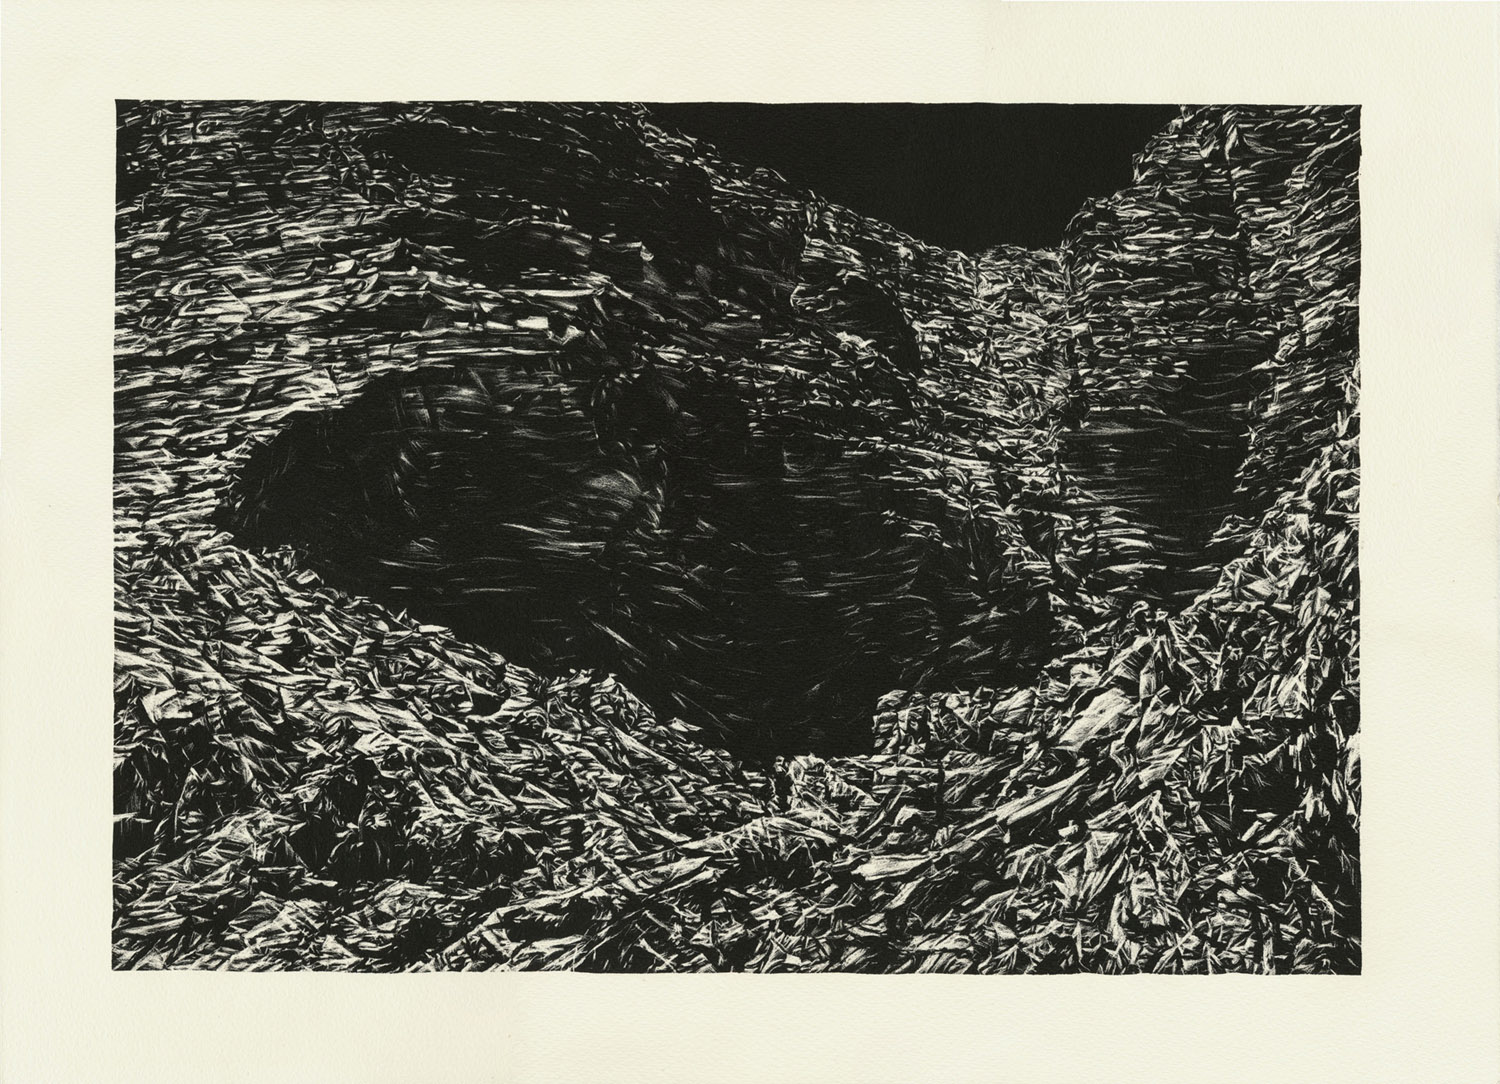 Moonlit Canyon, lithograph, 38 x 51 cm, edition of 14, 2013.